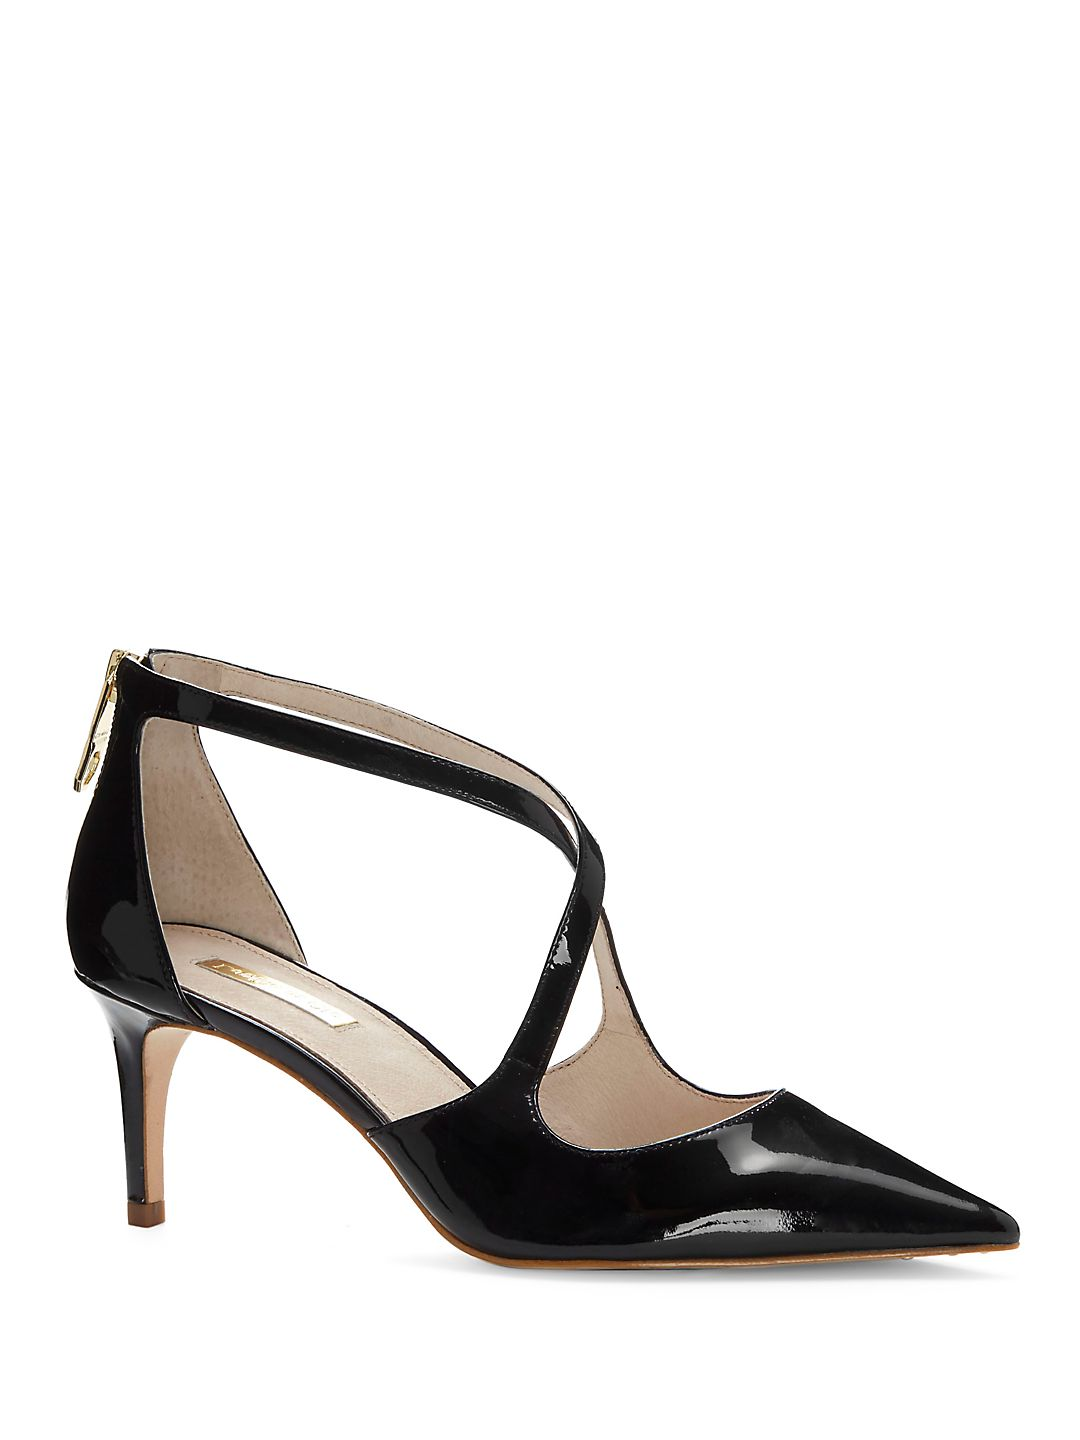 Jena Crossstrap Patent Leather Pumps